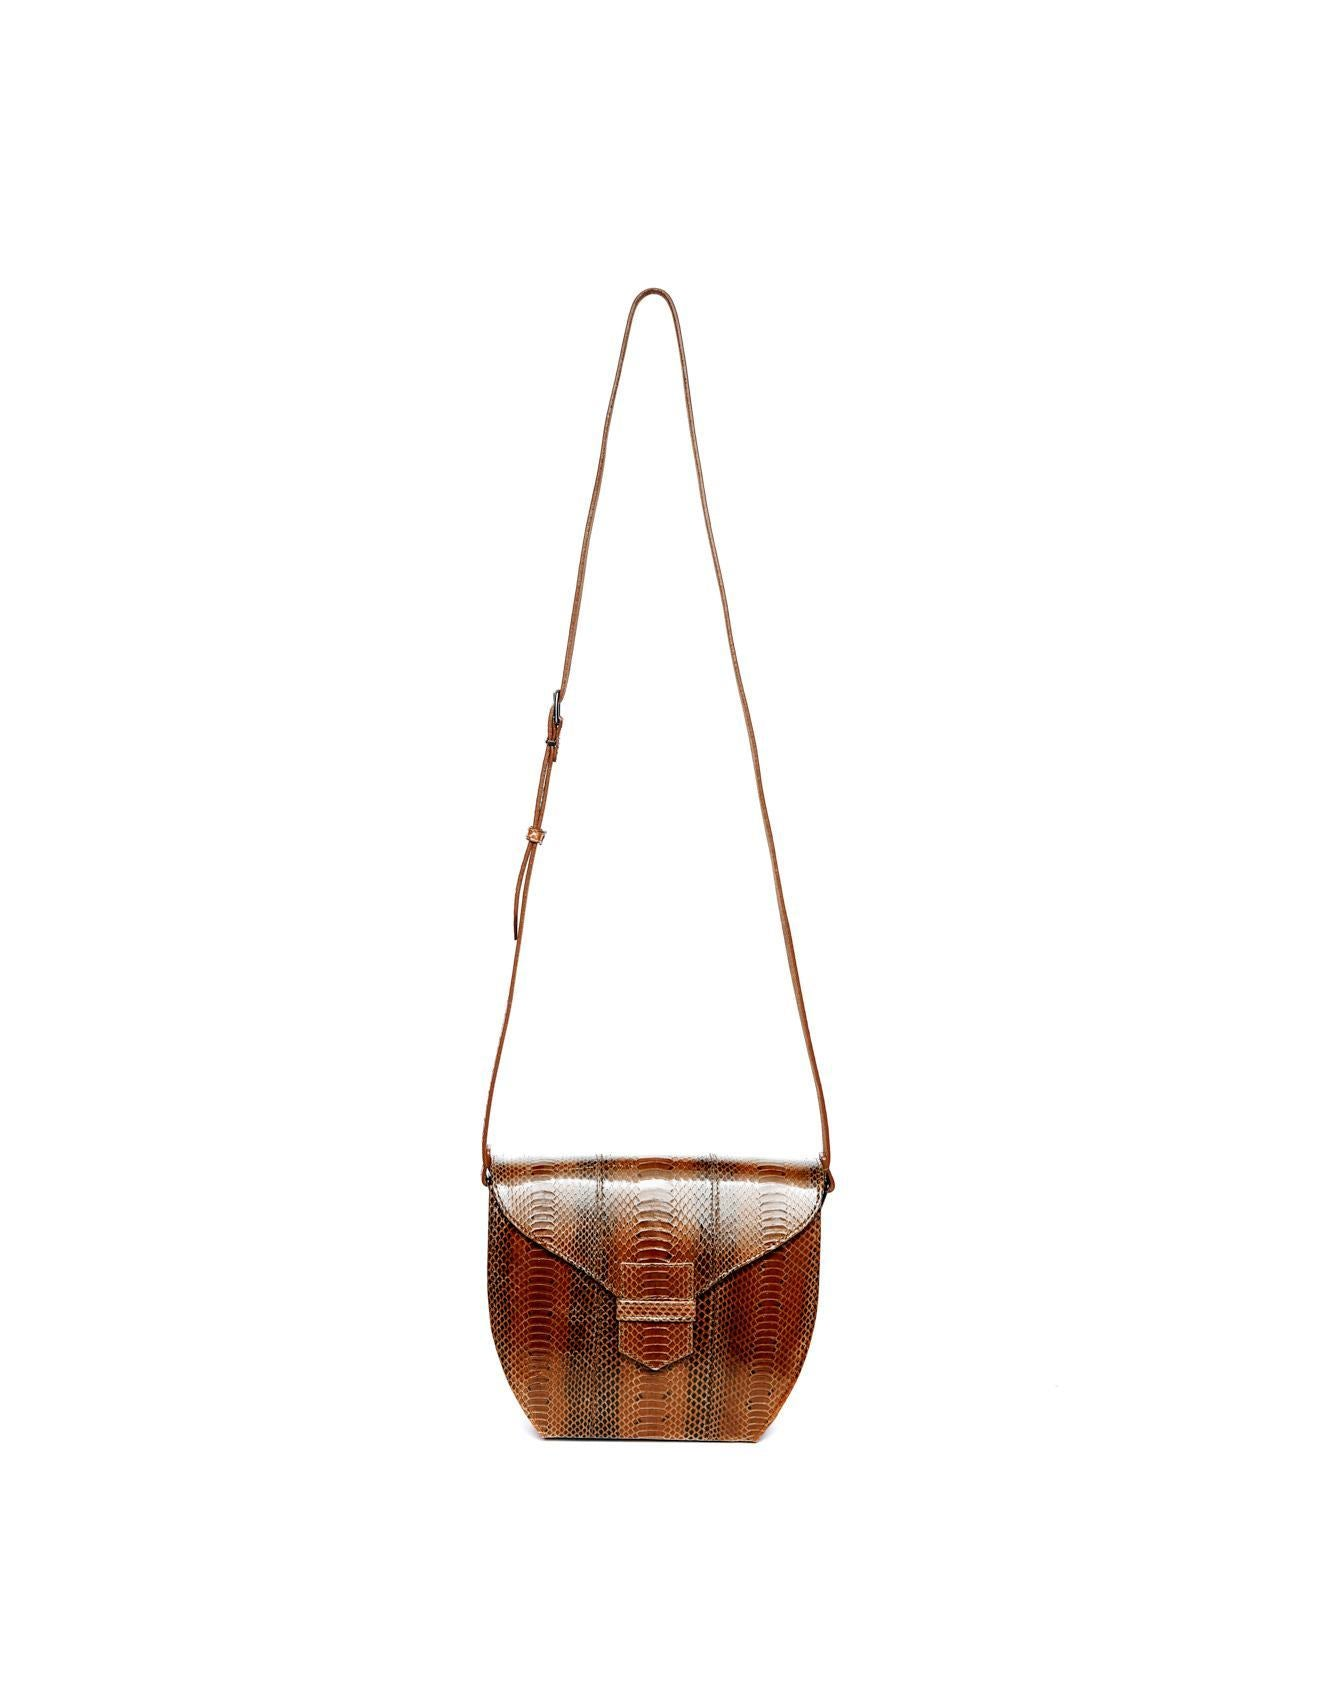 Anthology brown leather hand bag for women on Bellerose official webshop